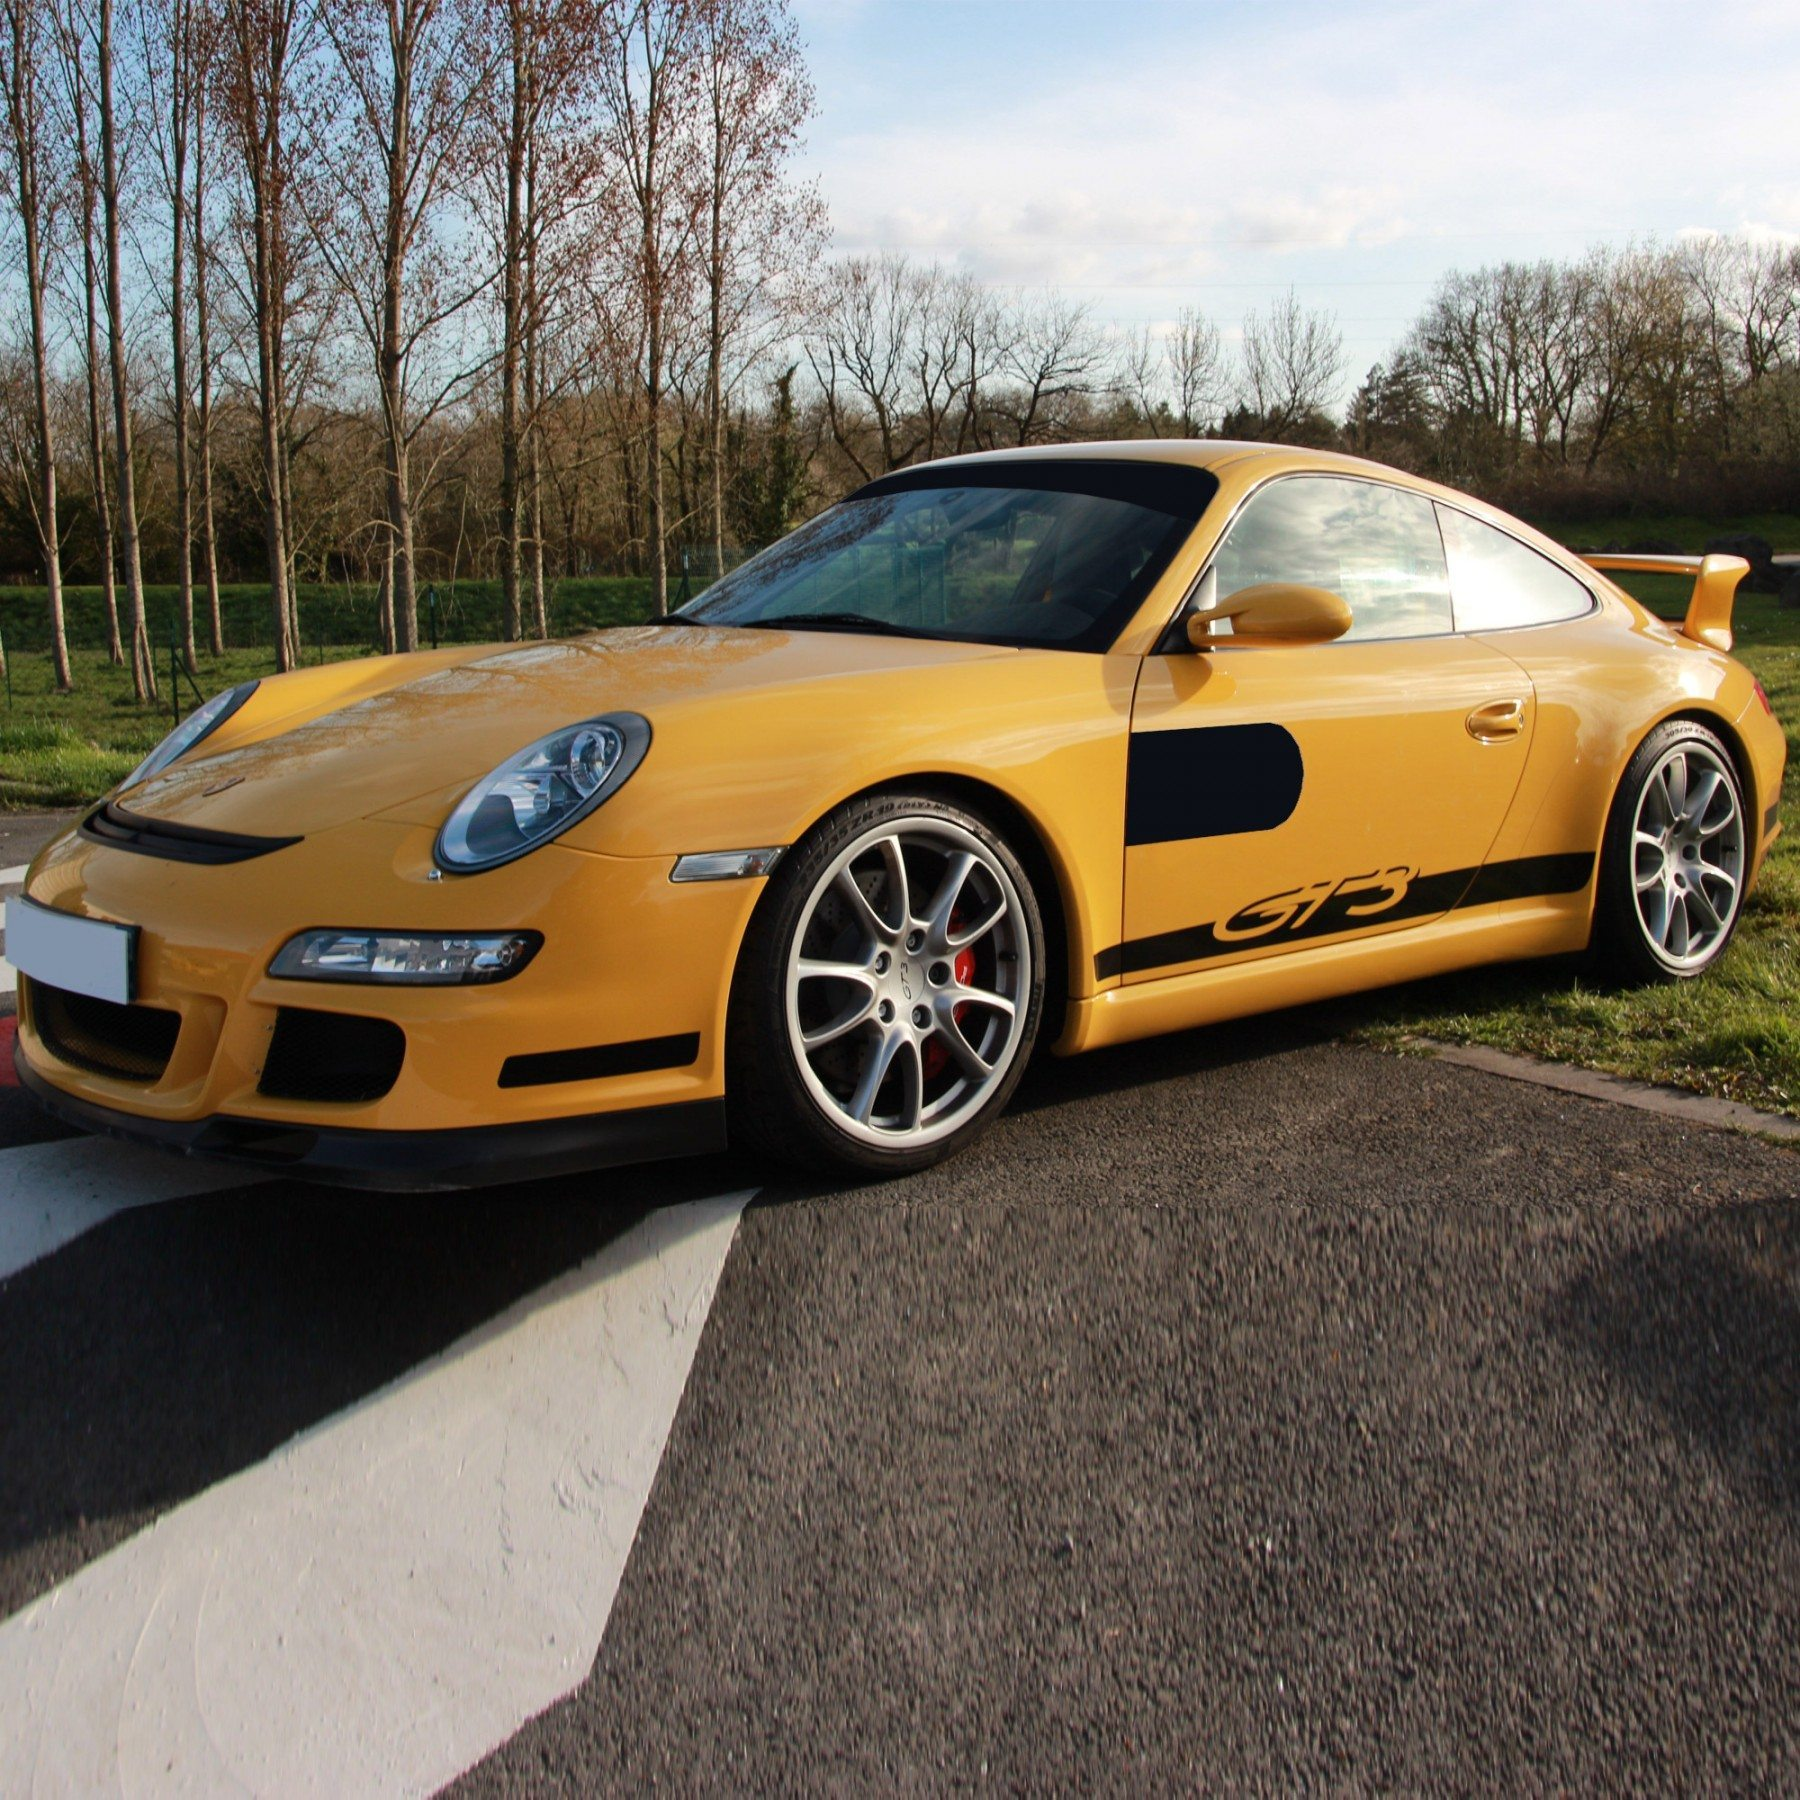 pilotage porsche 997 gt3 fay de bretagne. Black Bedroom Furniture Sets. Home Design Ideas